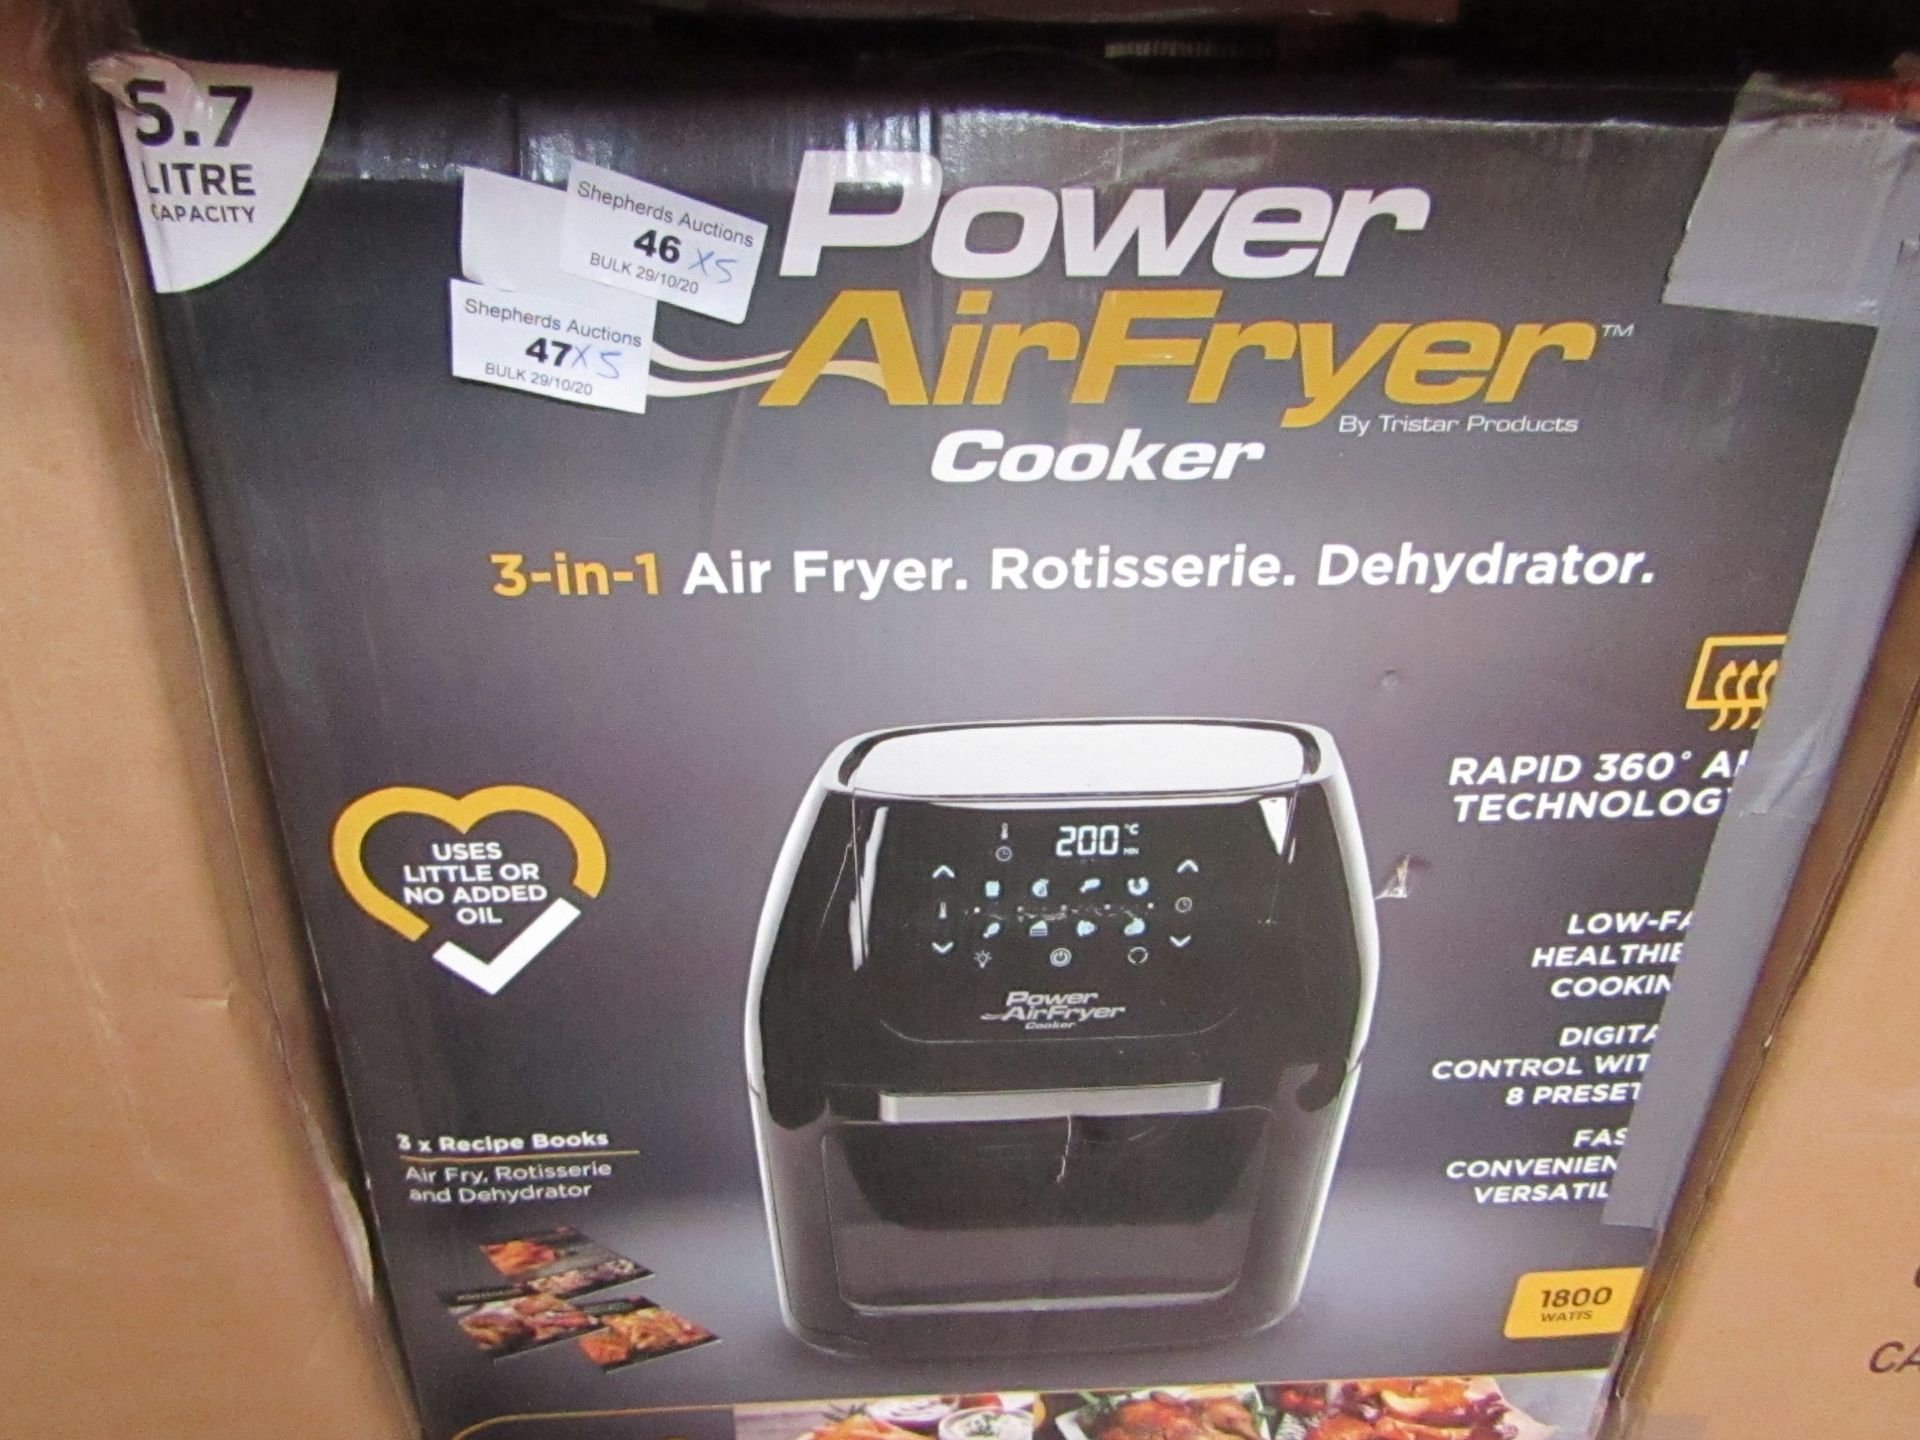   5X   POWER AIR FRYER COOKER 5.7LTR   UNCHECKED AND BOXED   NO ONLINE RE-SALE   SKU C506051510937  